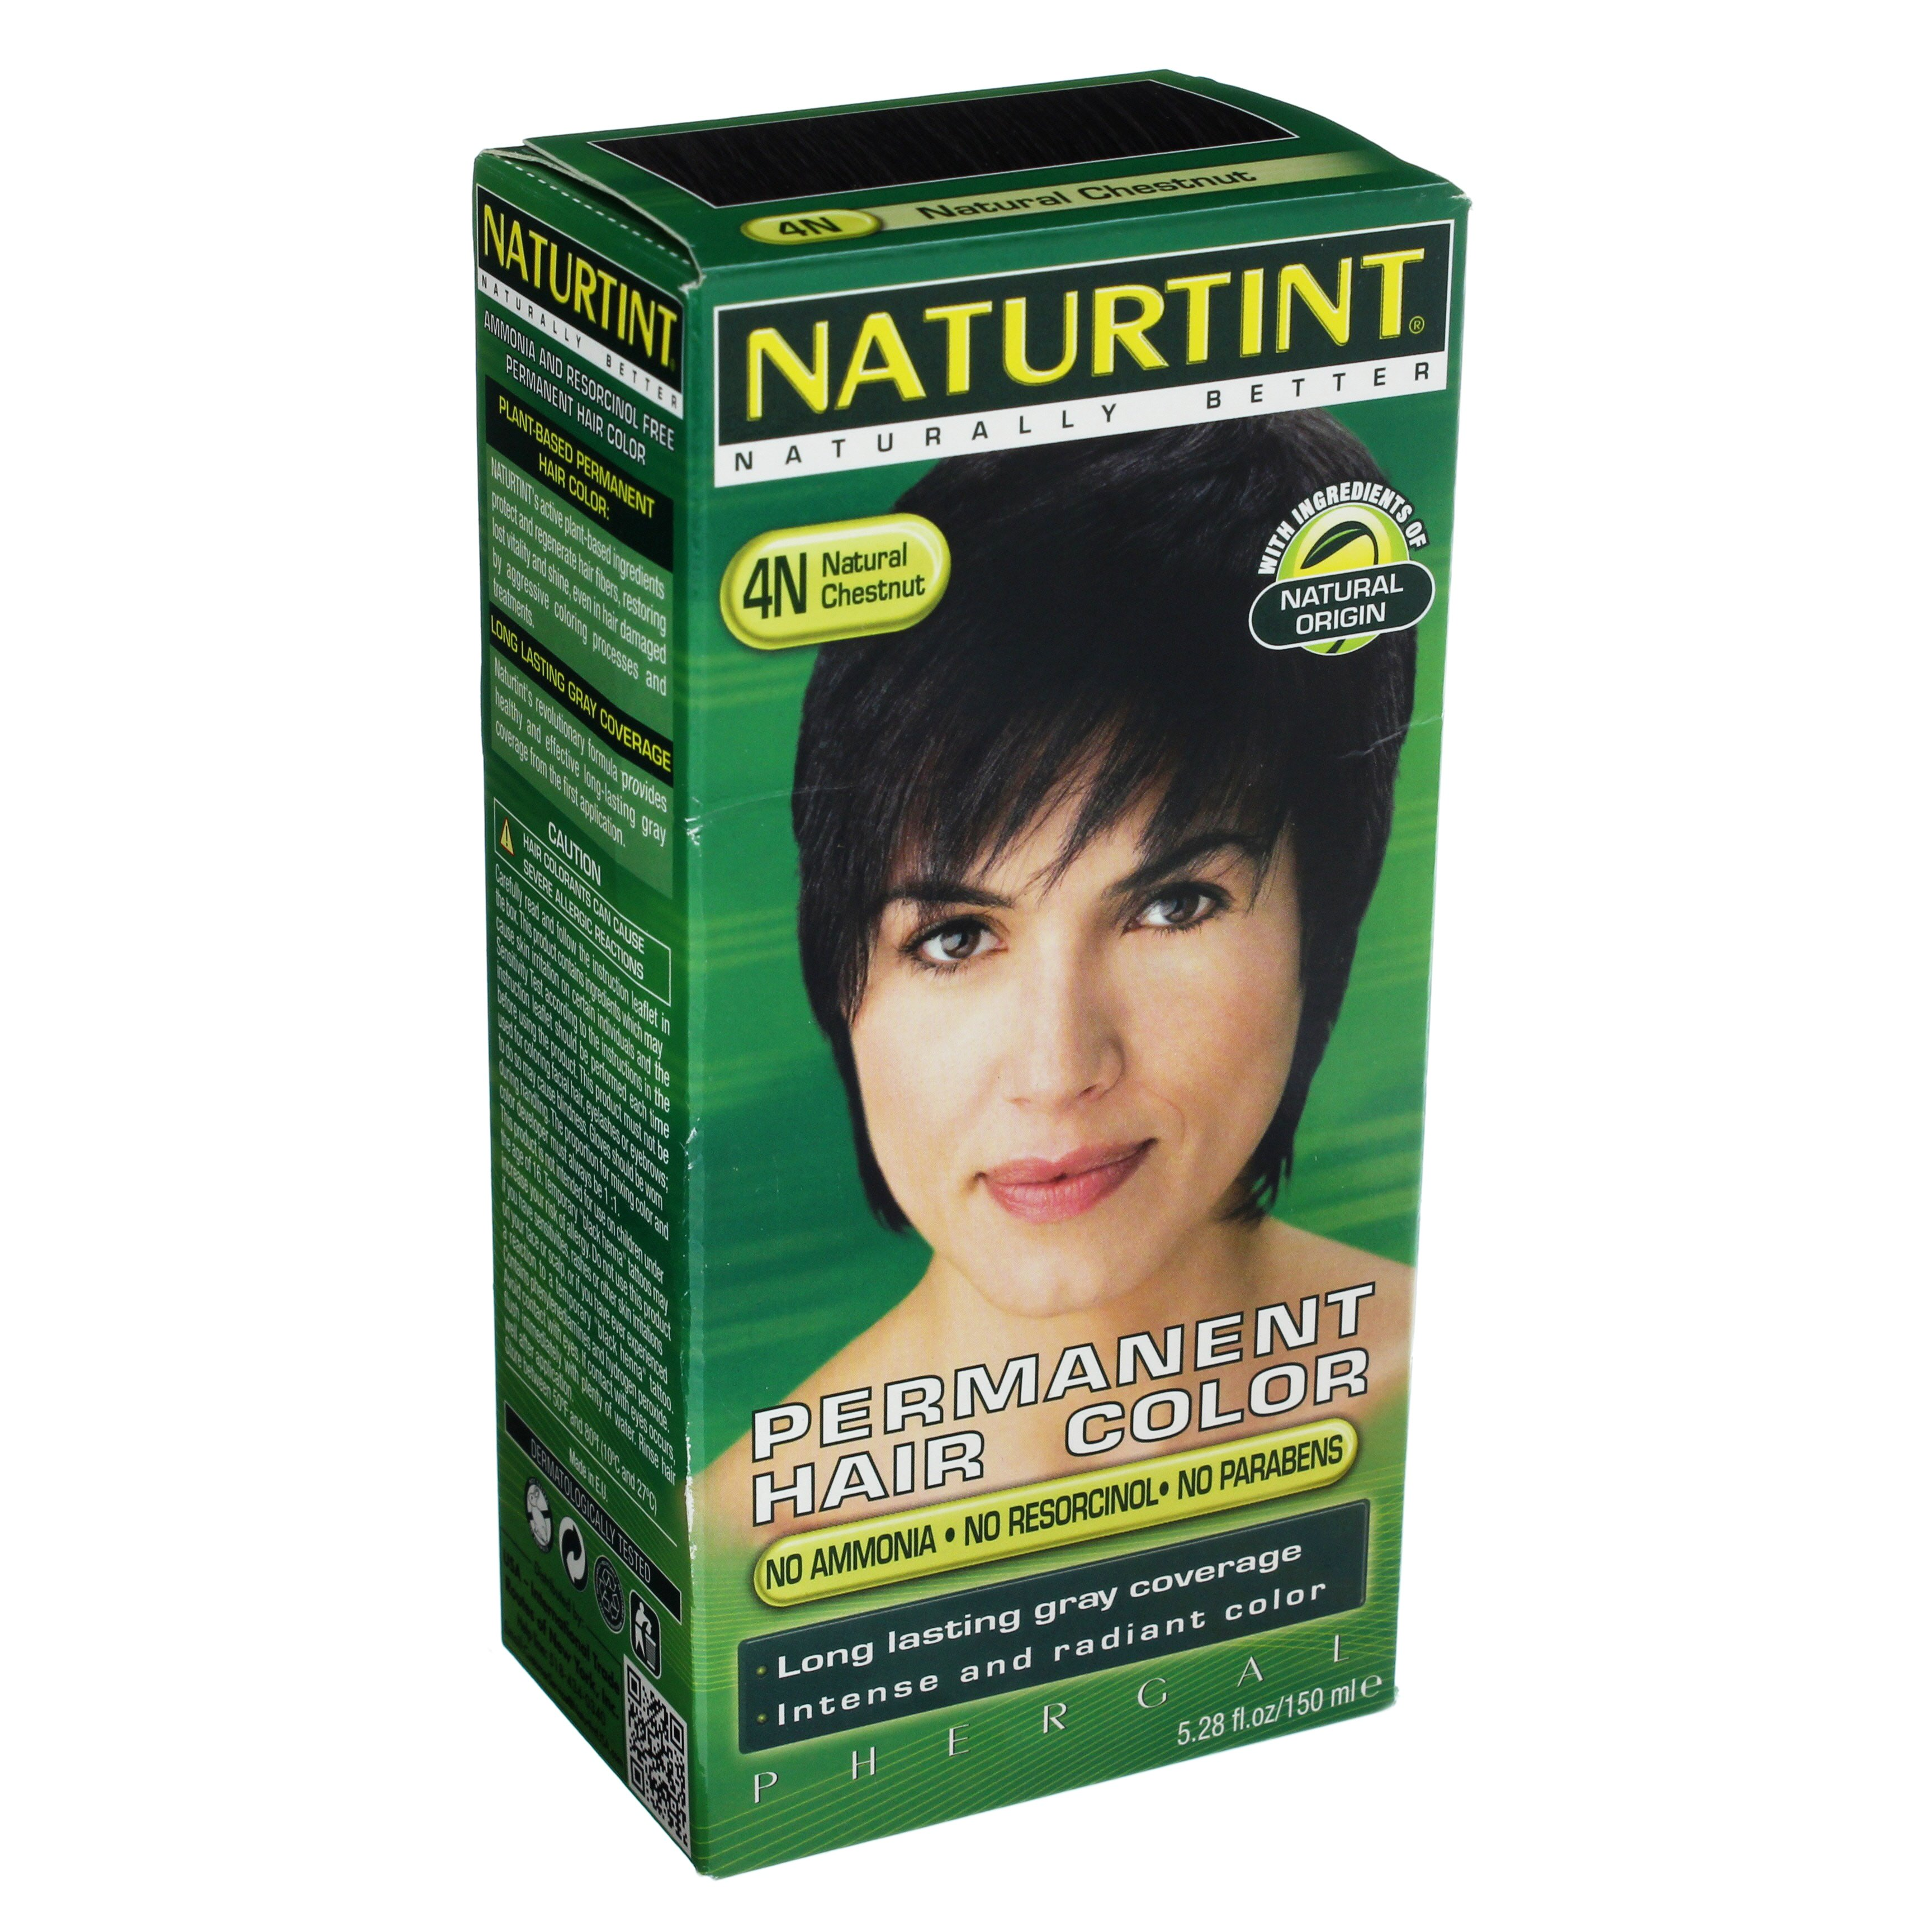 Naturtint Permanent Hair Color Natural Chestnut 4n Shop Hair At Heb